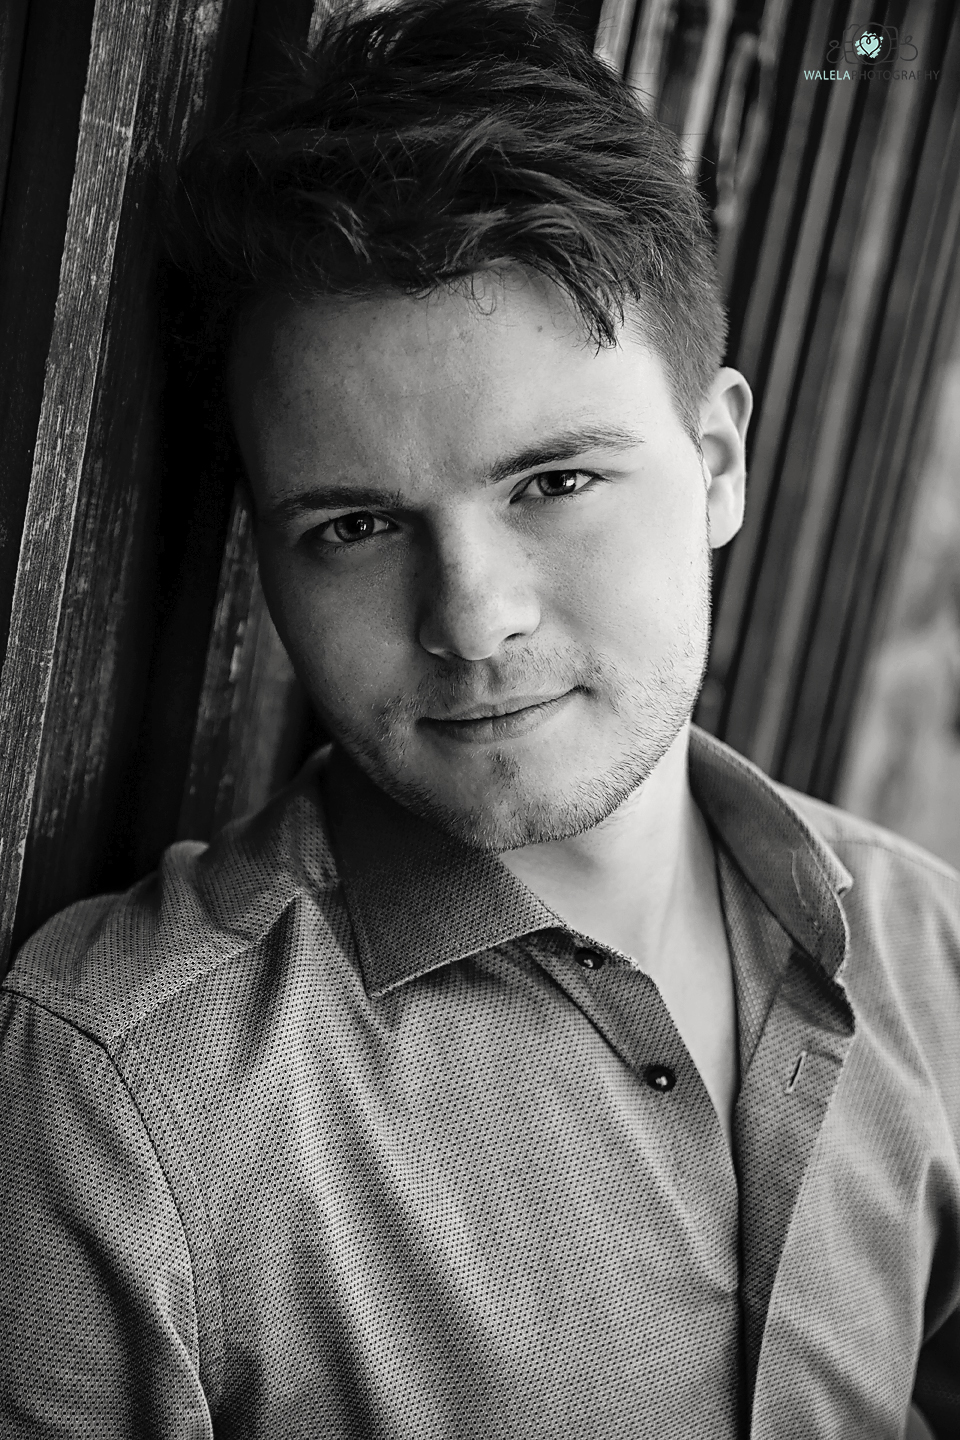 ROD_6146_bnw_Preview